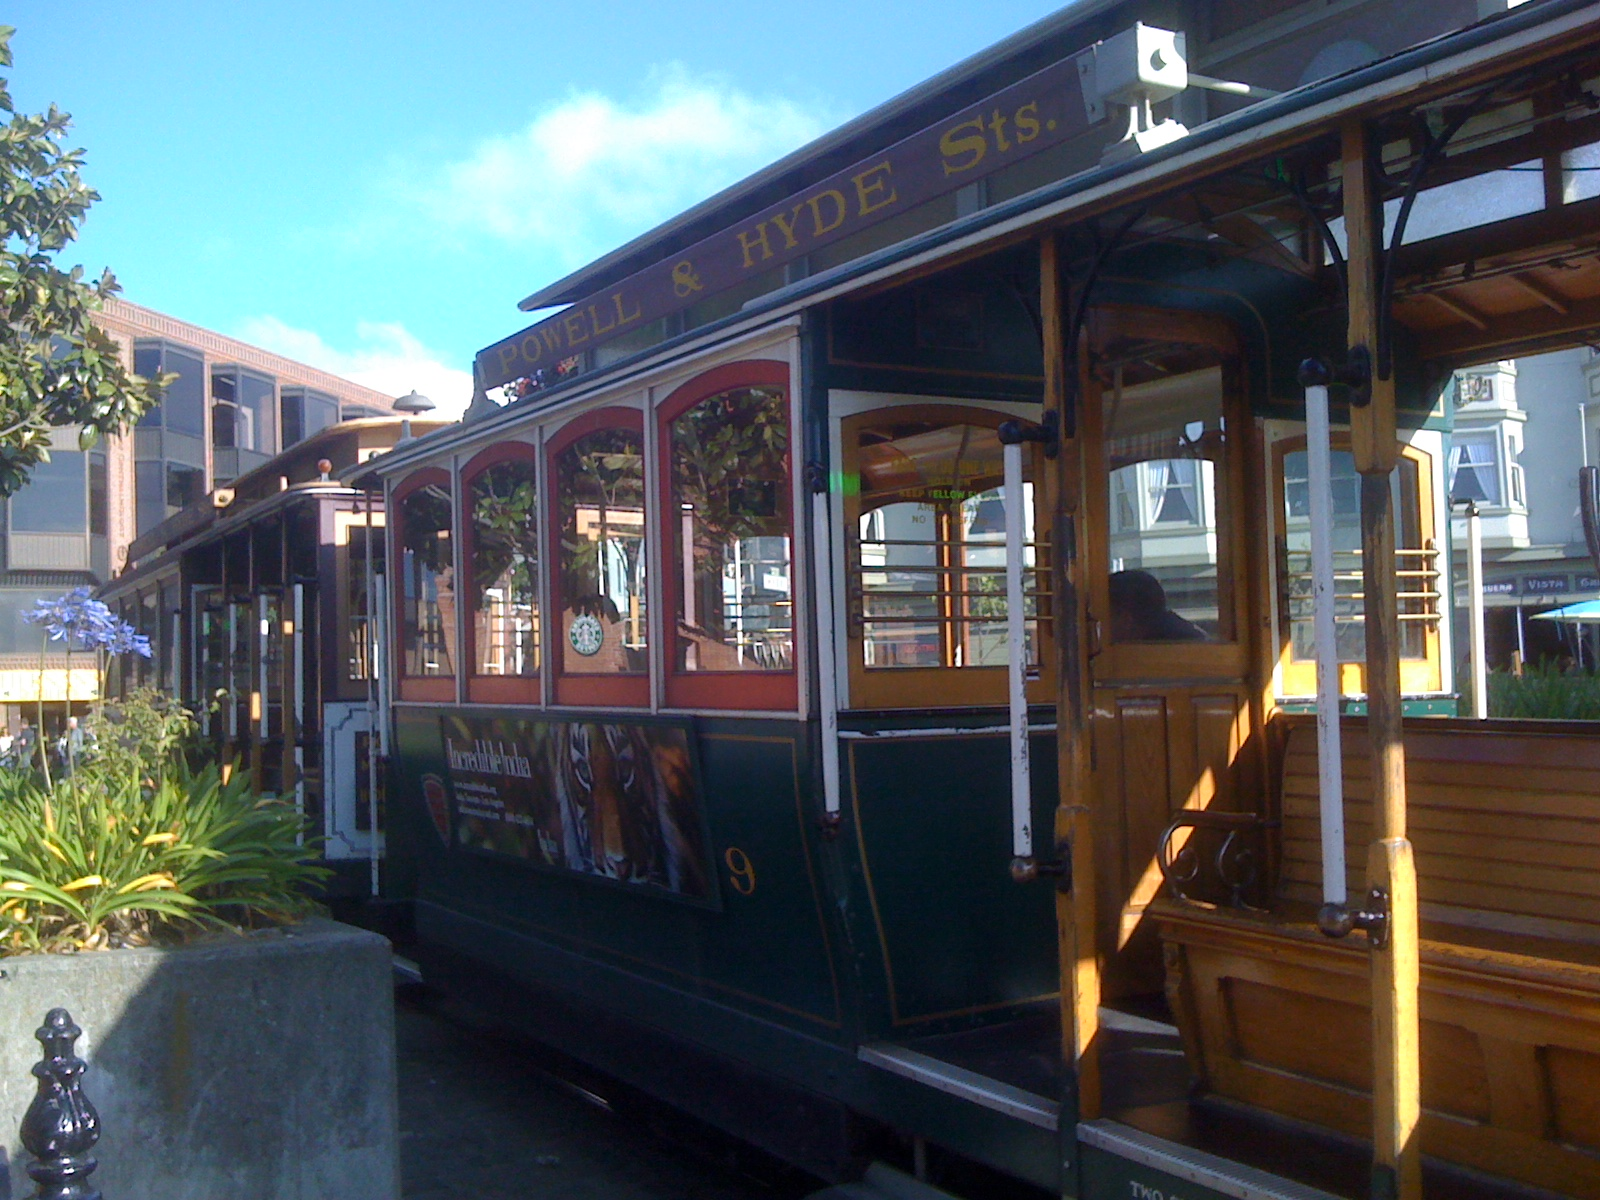 A typical cable car